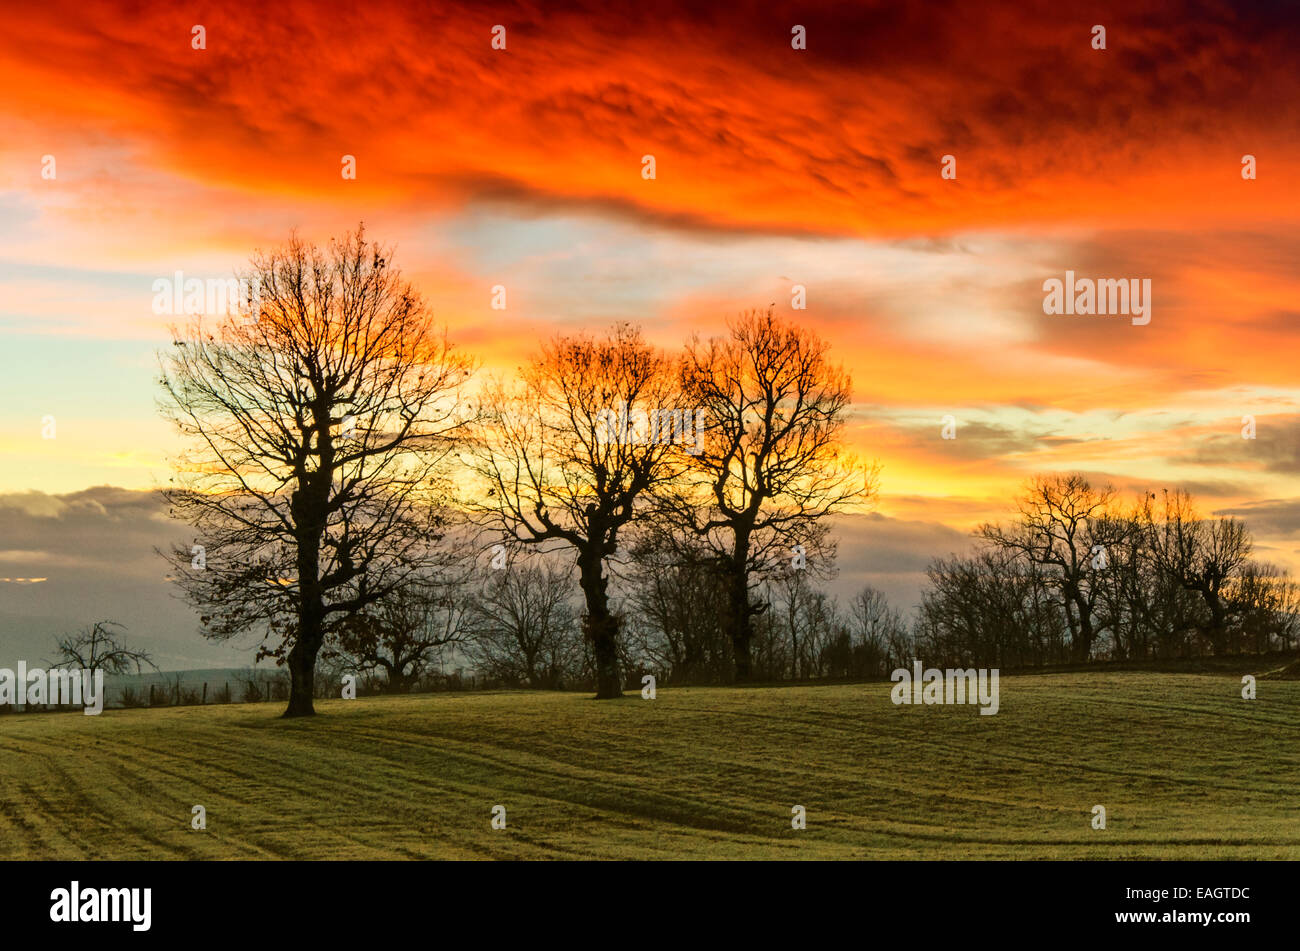 Colorful magical sun rise with trees Greece - Stock Image